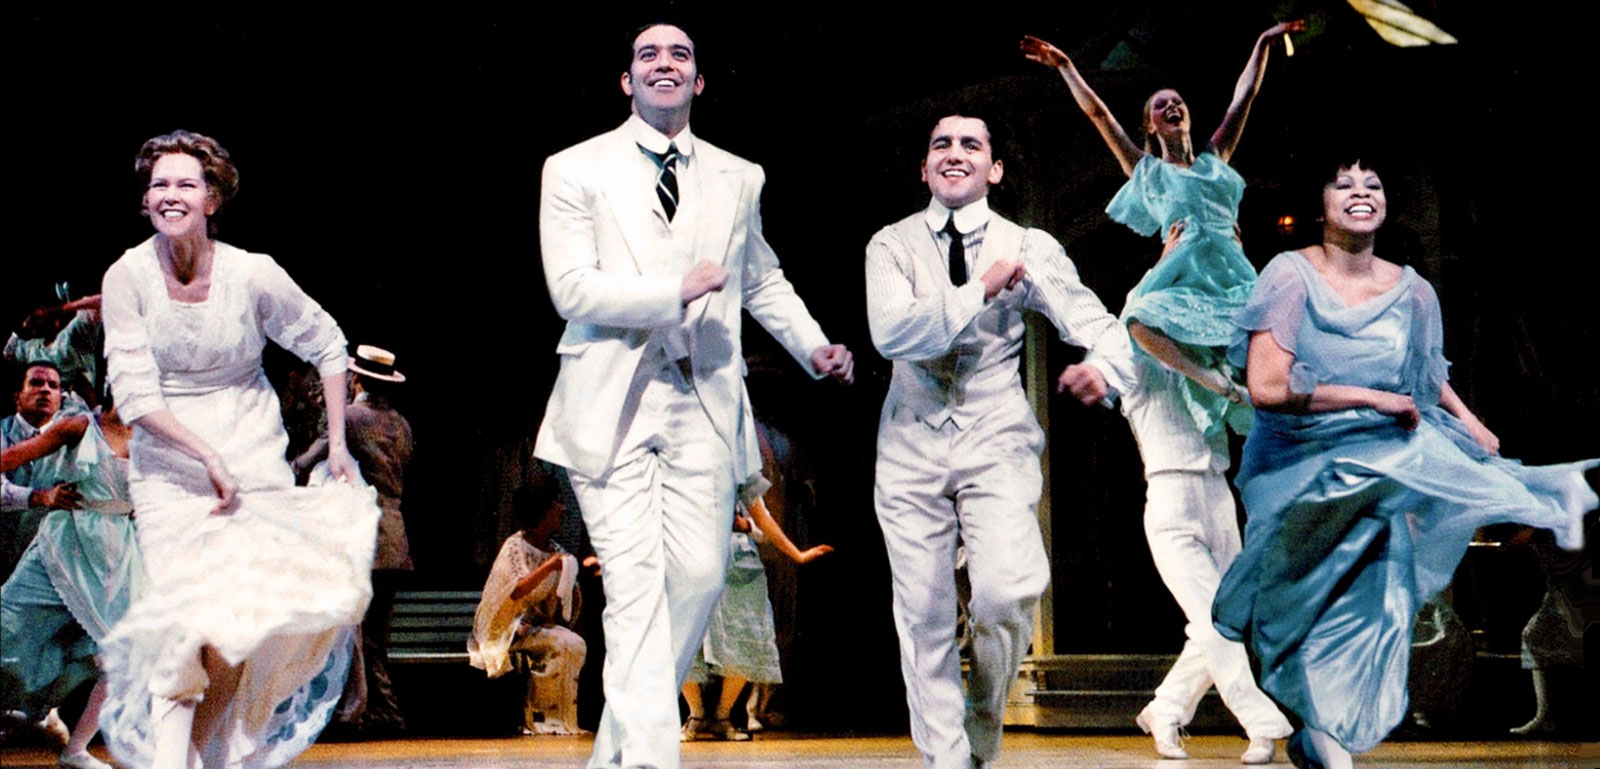 """Rebecca Luker (Marian Paroo), Harold Hill (Craig Bierko), Marcellus Washburn (Max Casella) and Ethel Toffelmier (Tracy Chapman) dancing """"Shipoopi"""". The men are dressed in handsome white suits and the women are in beautiful dresses."""